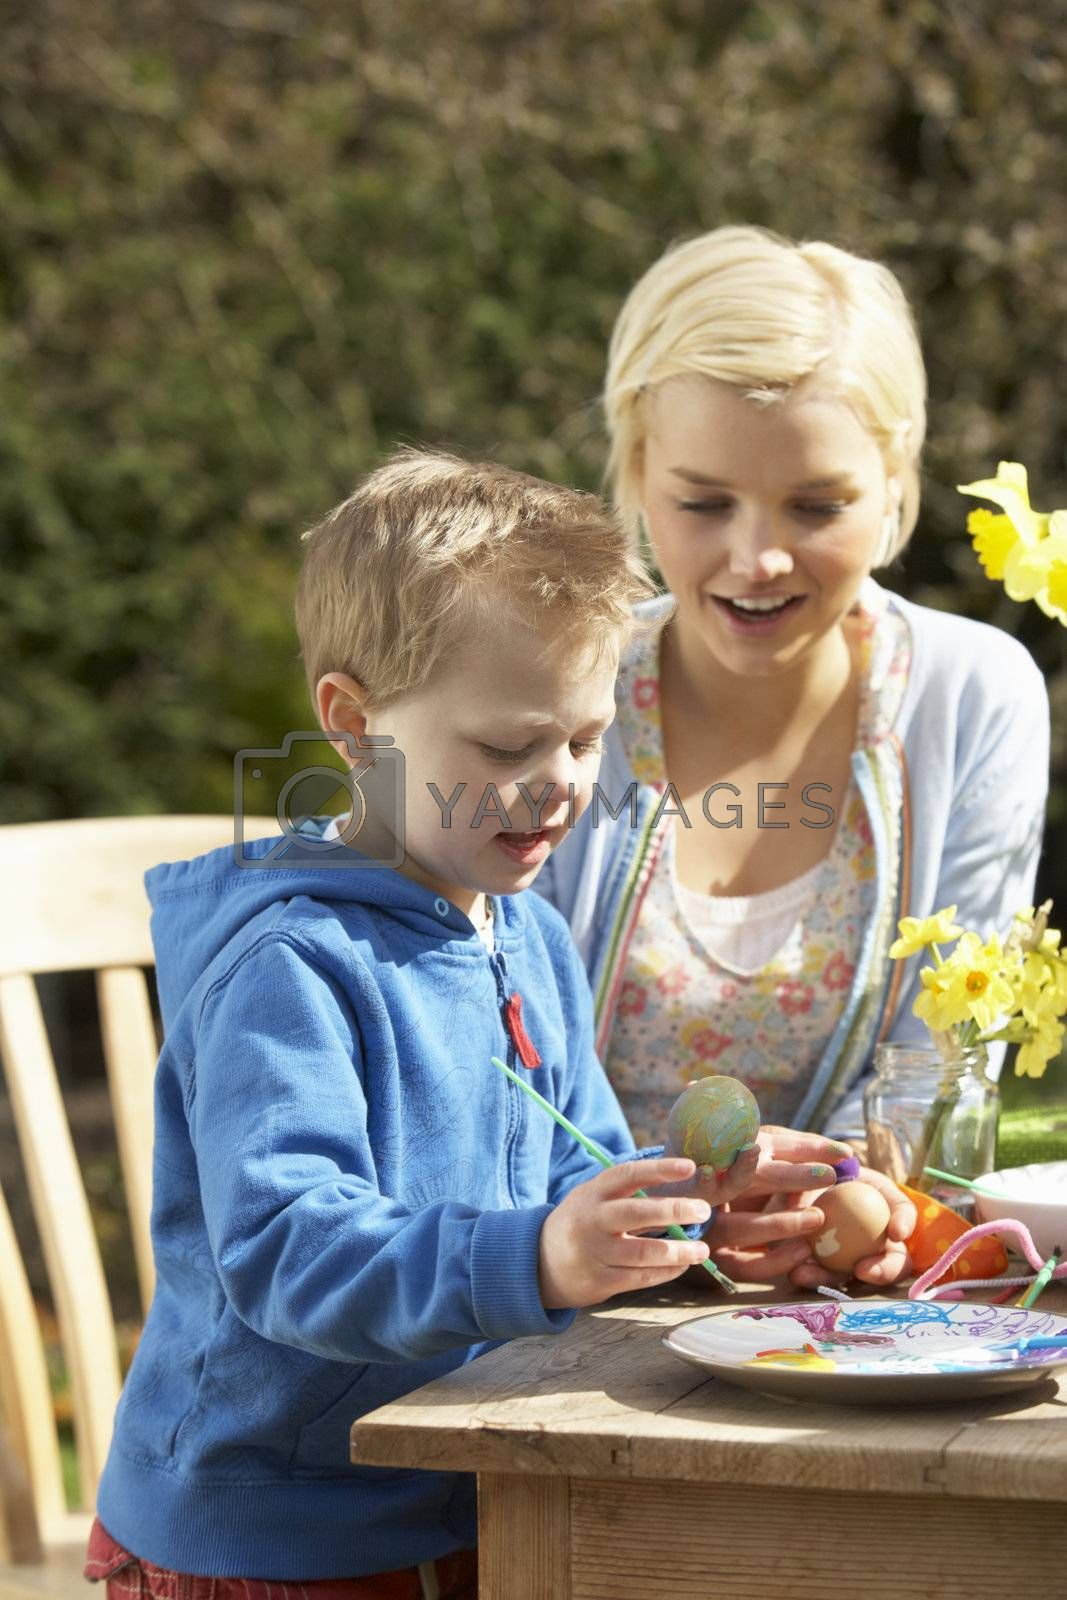 Mother And Son Decorating Easter Eggs On Table Outdoors